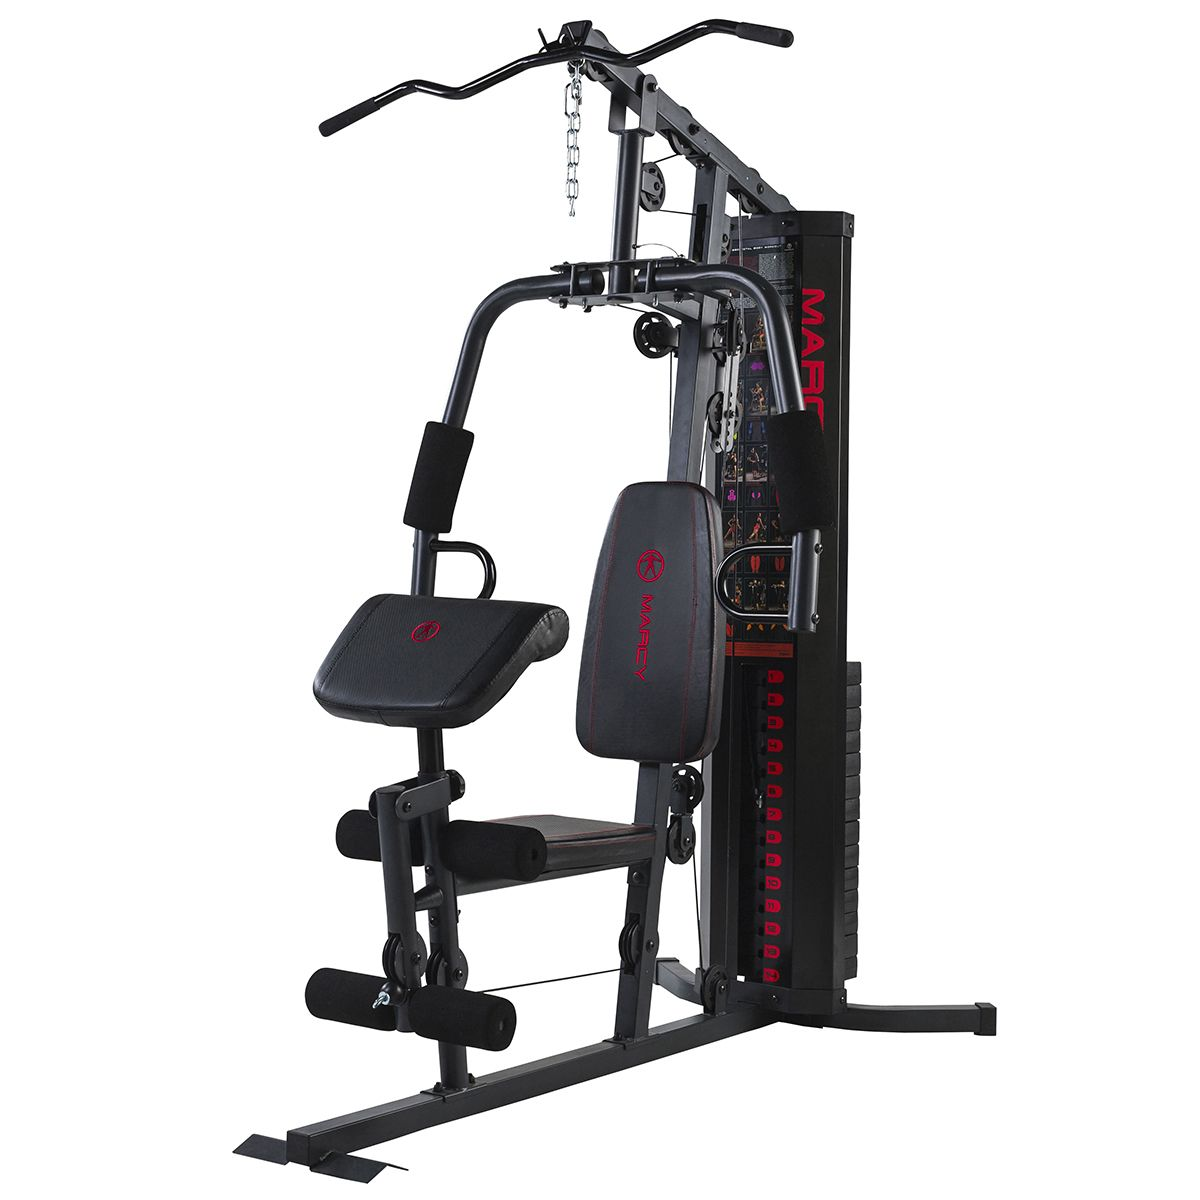 Buy cheap compact multi gym compare weight training